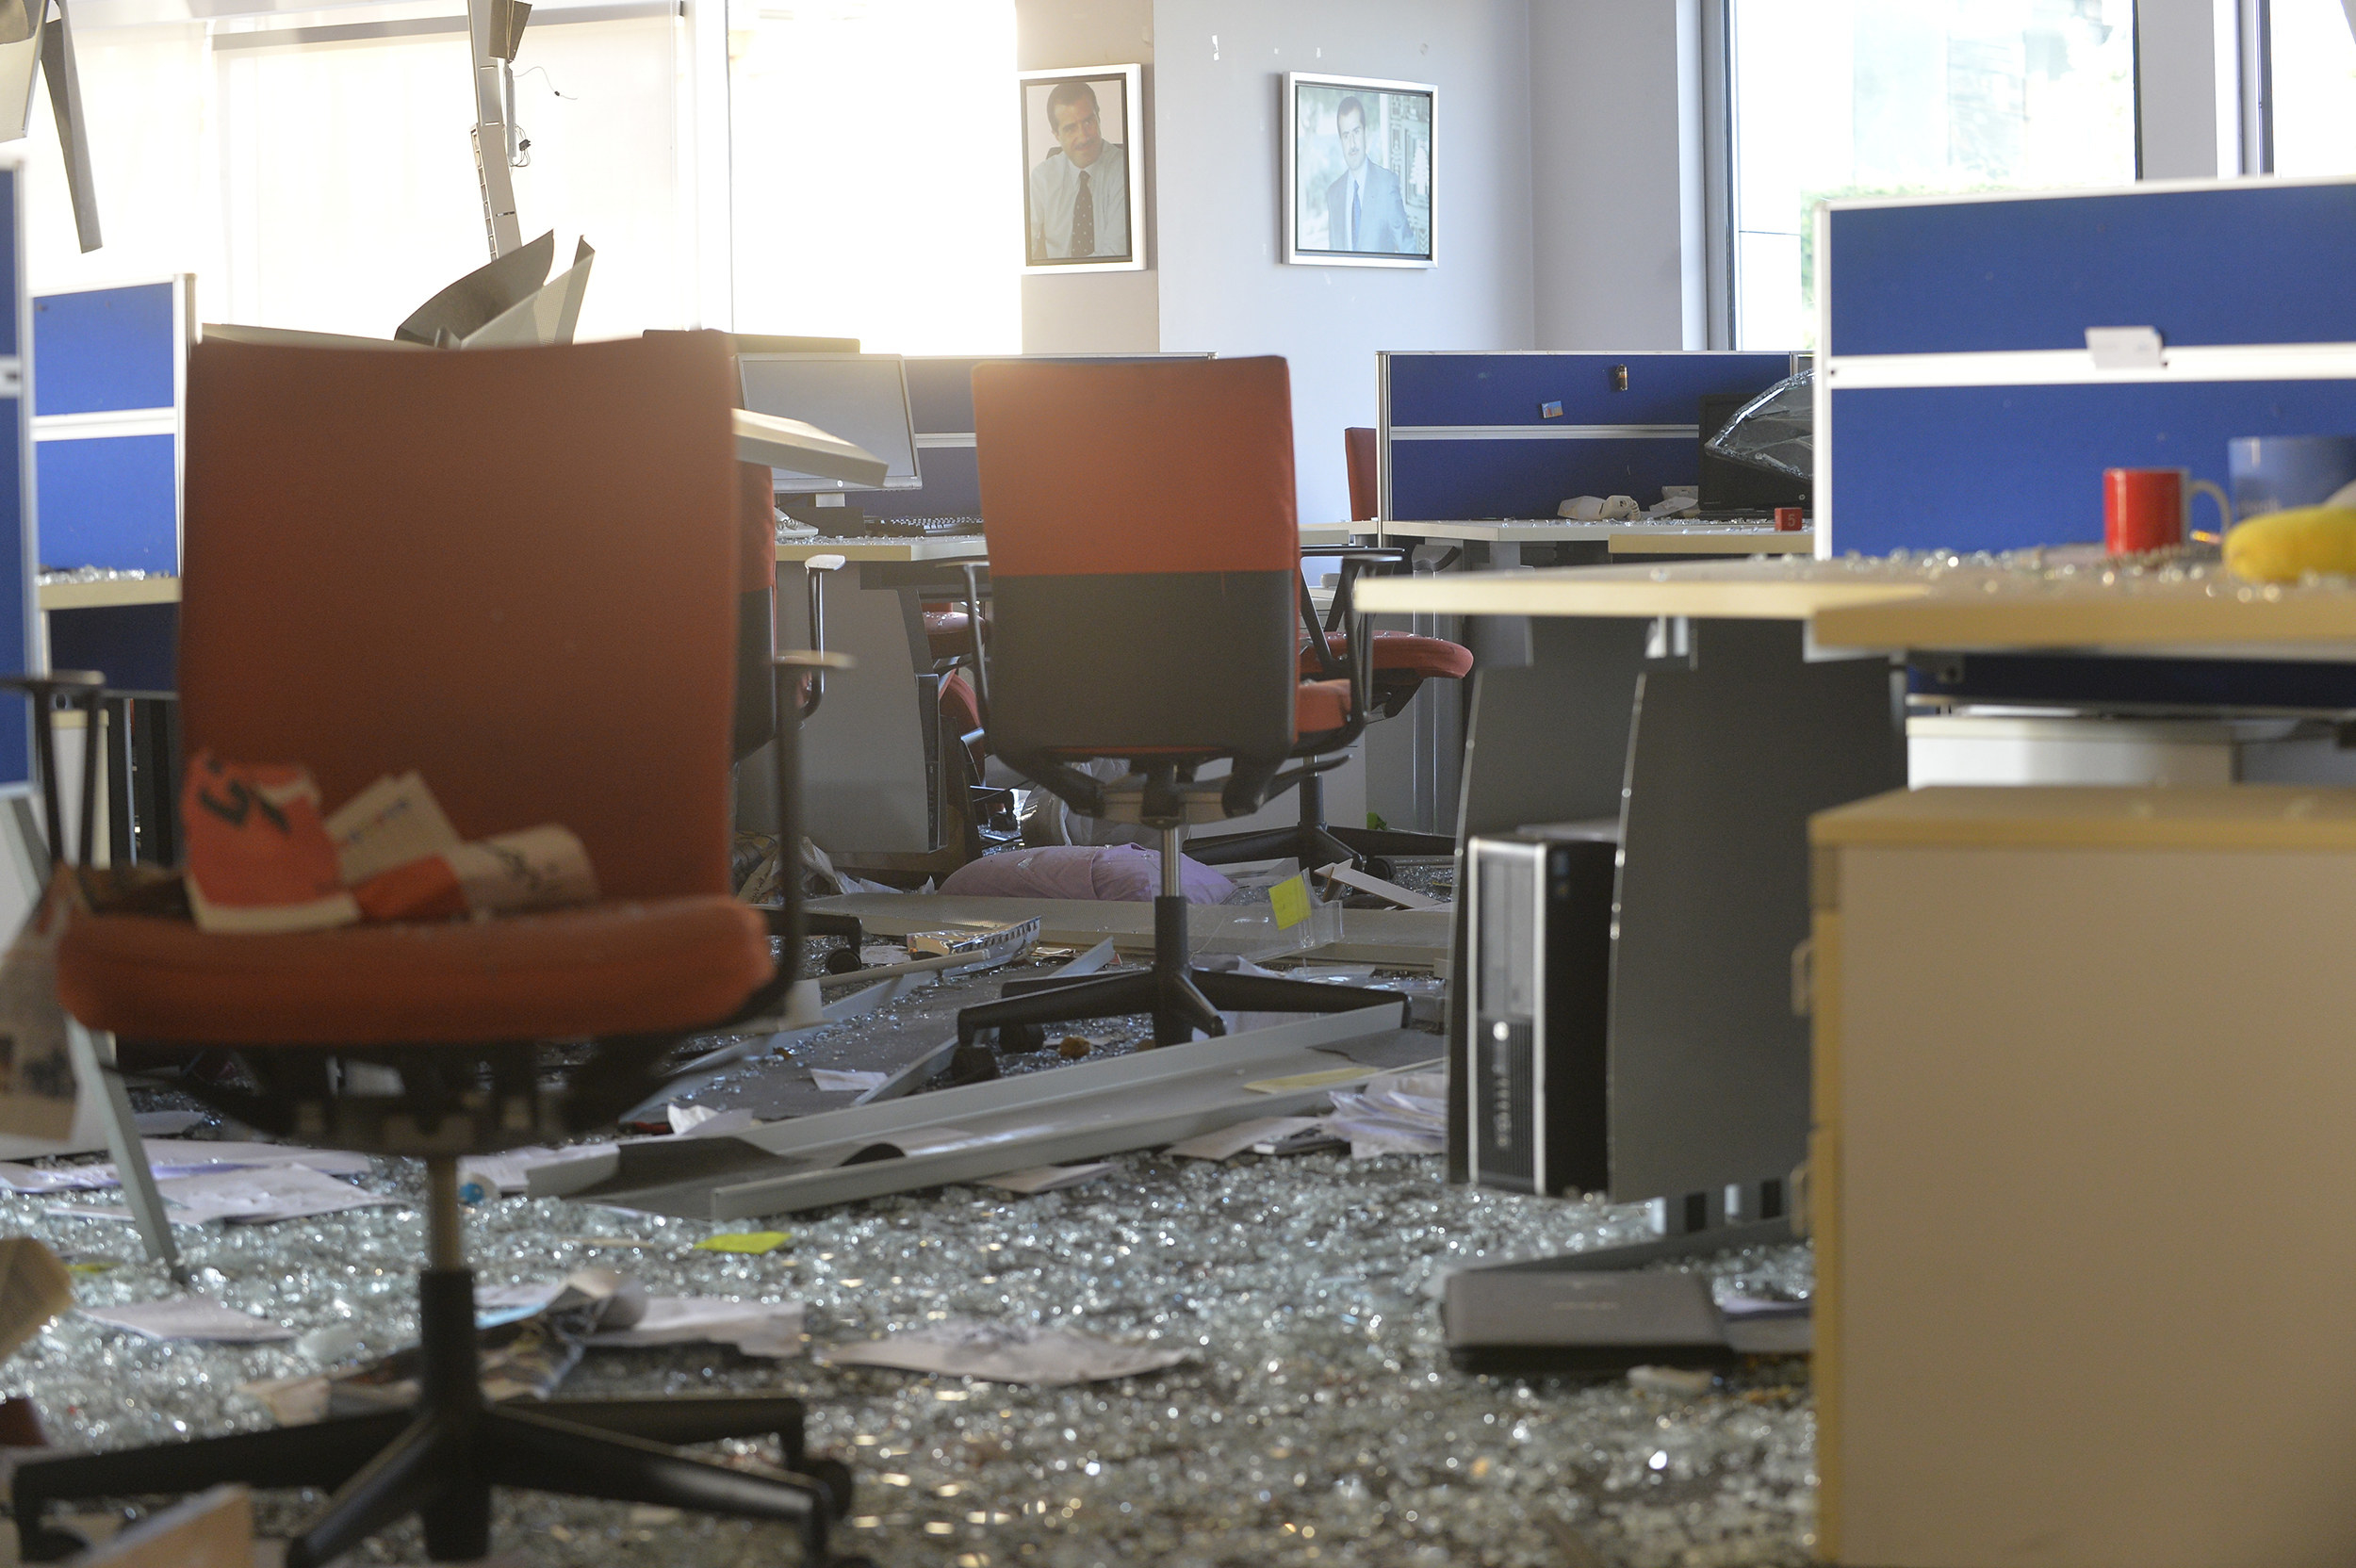 An office with broken glass and debris everywhere